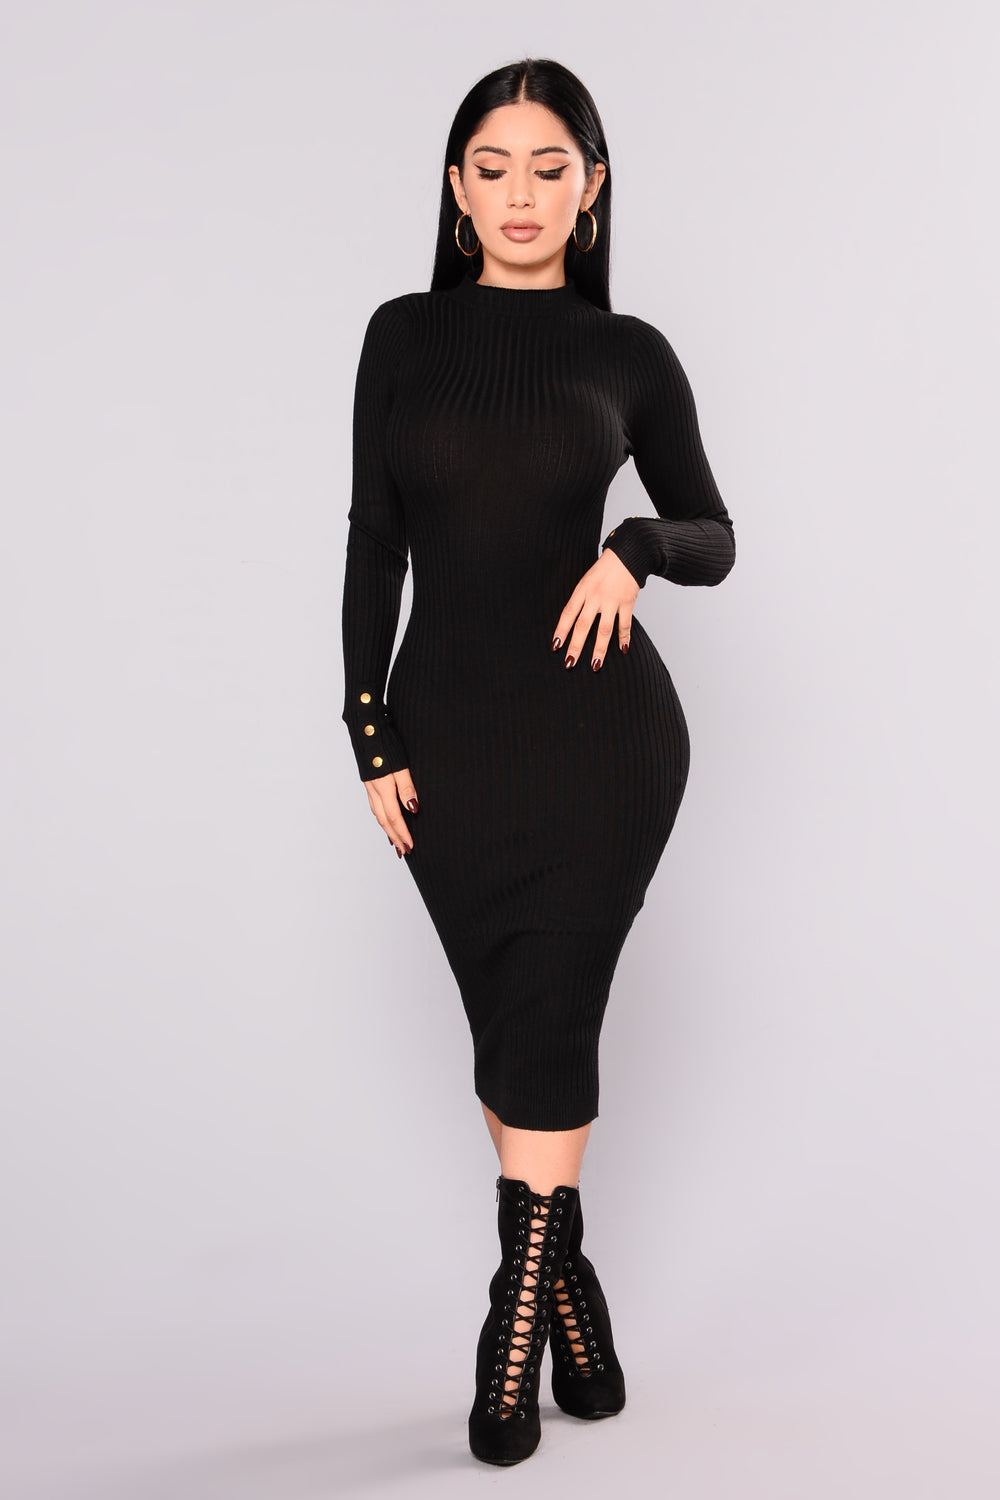 Canal St. Ribbed Dress - Black